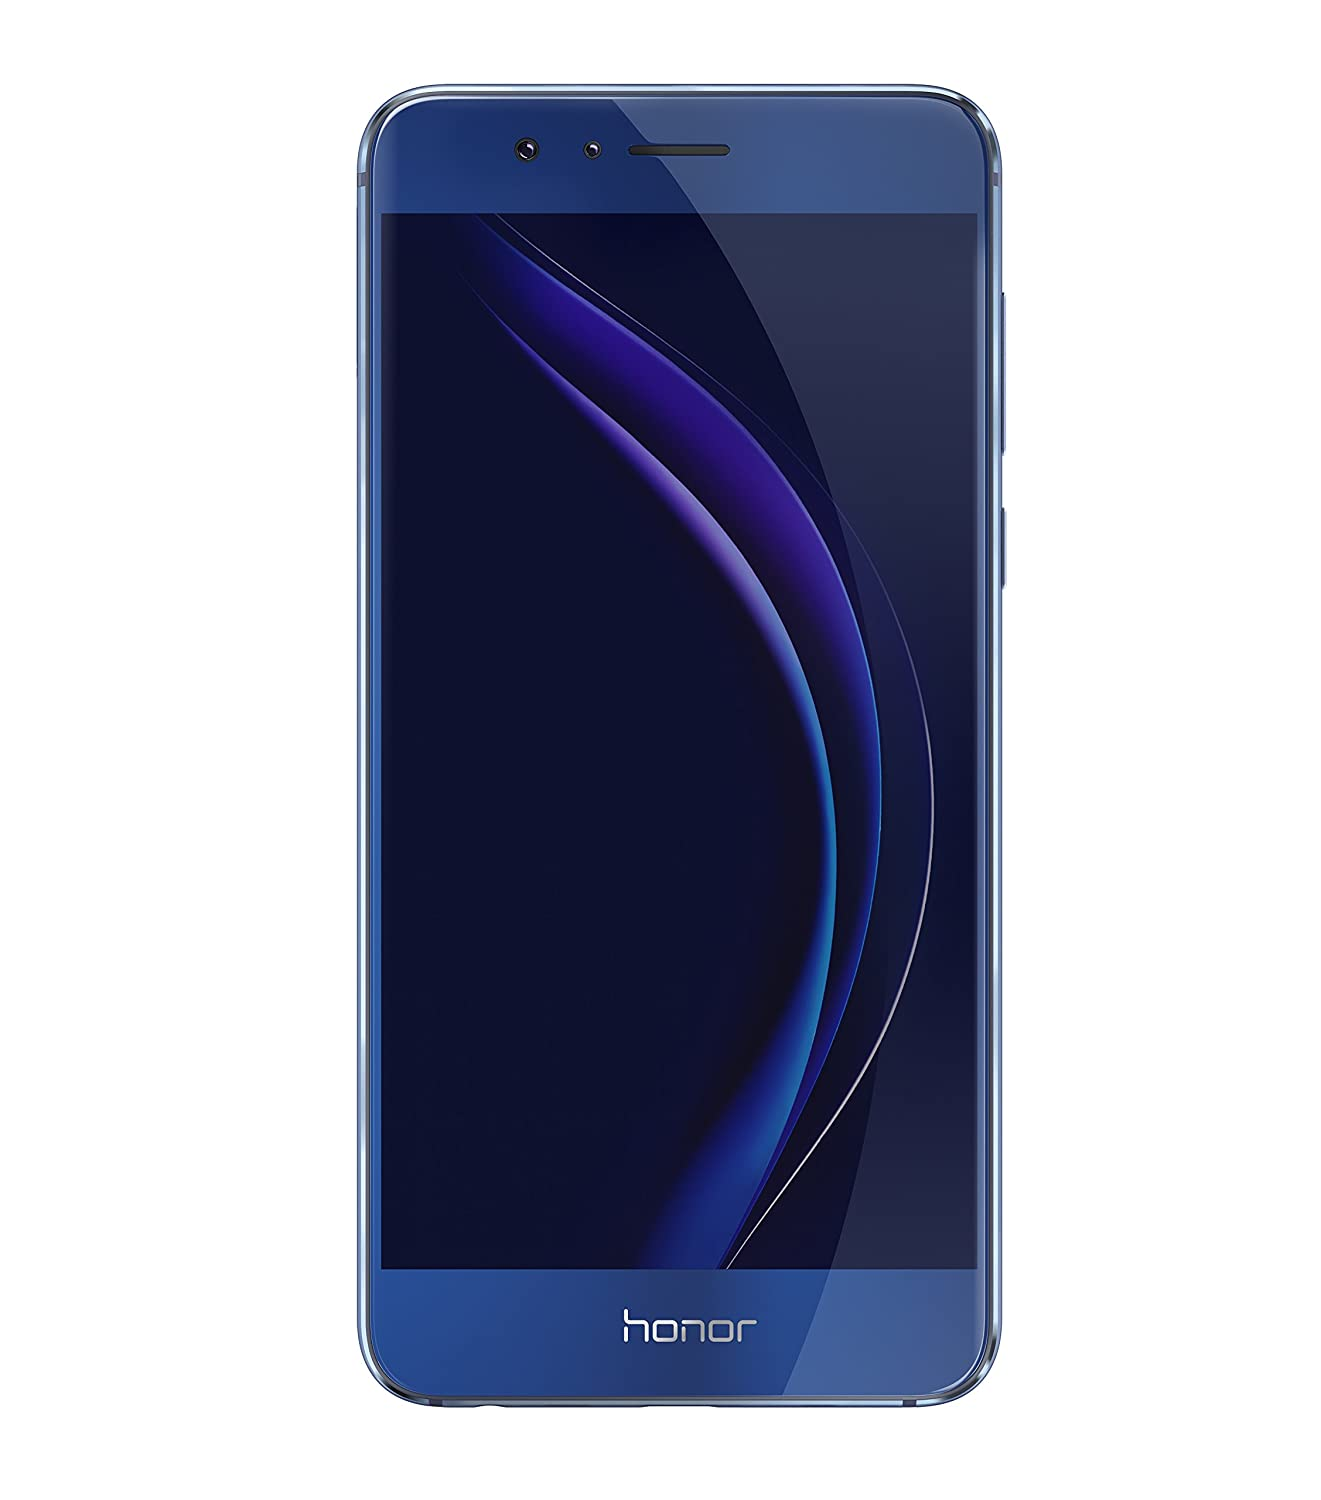 "Honor 8 Smartphone 4G LTE, Display 5.2"" IPS LCD, Octa-Core HiSilicon Kirin 950, 32 GB, 4 GB RAM, Doppia Fotocamera 12 MP, Blu"